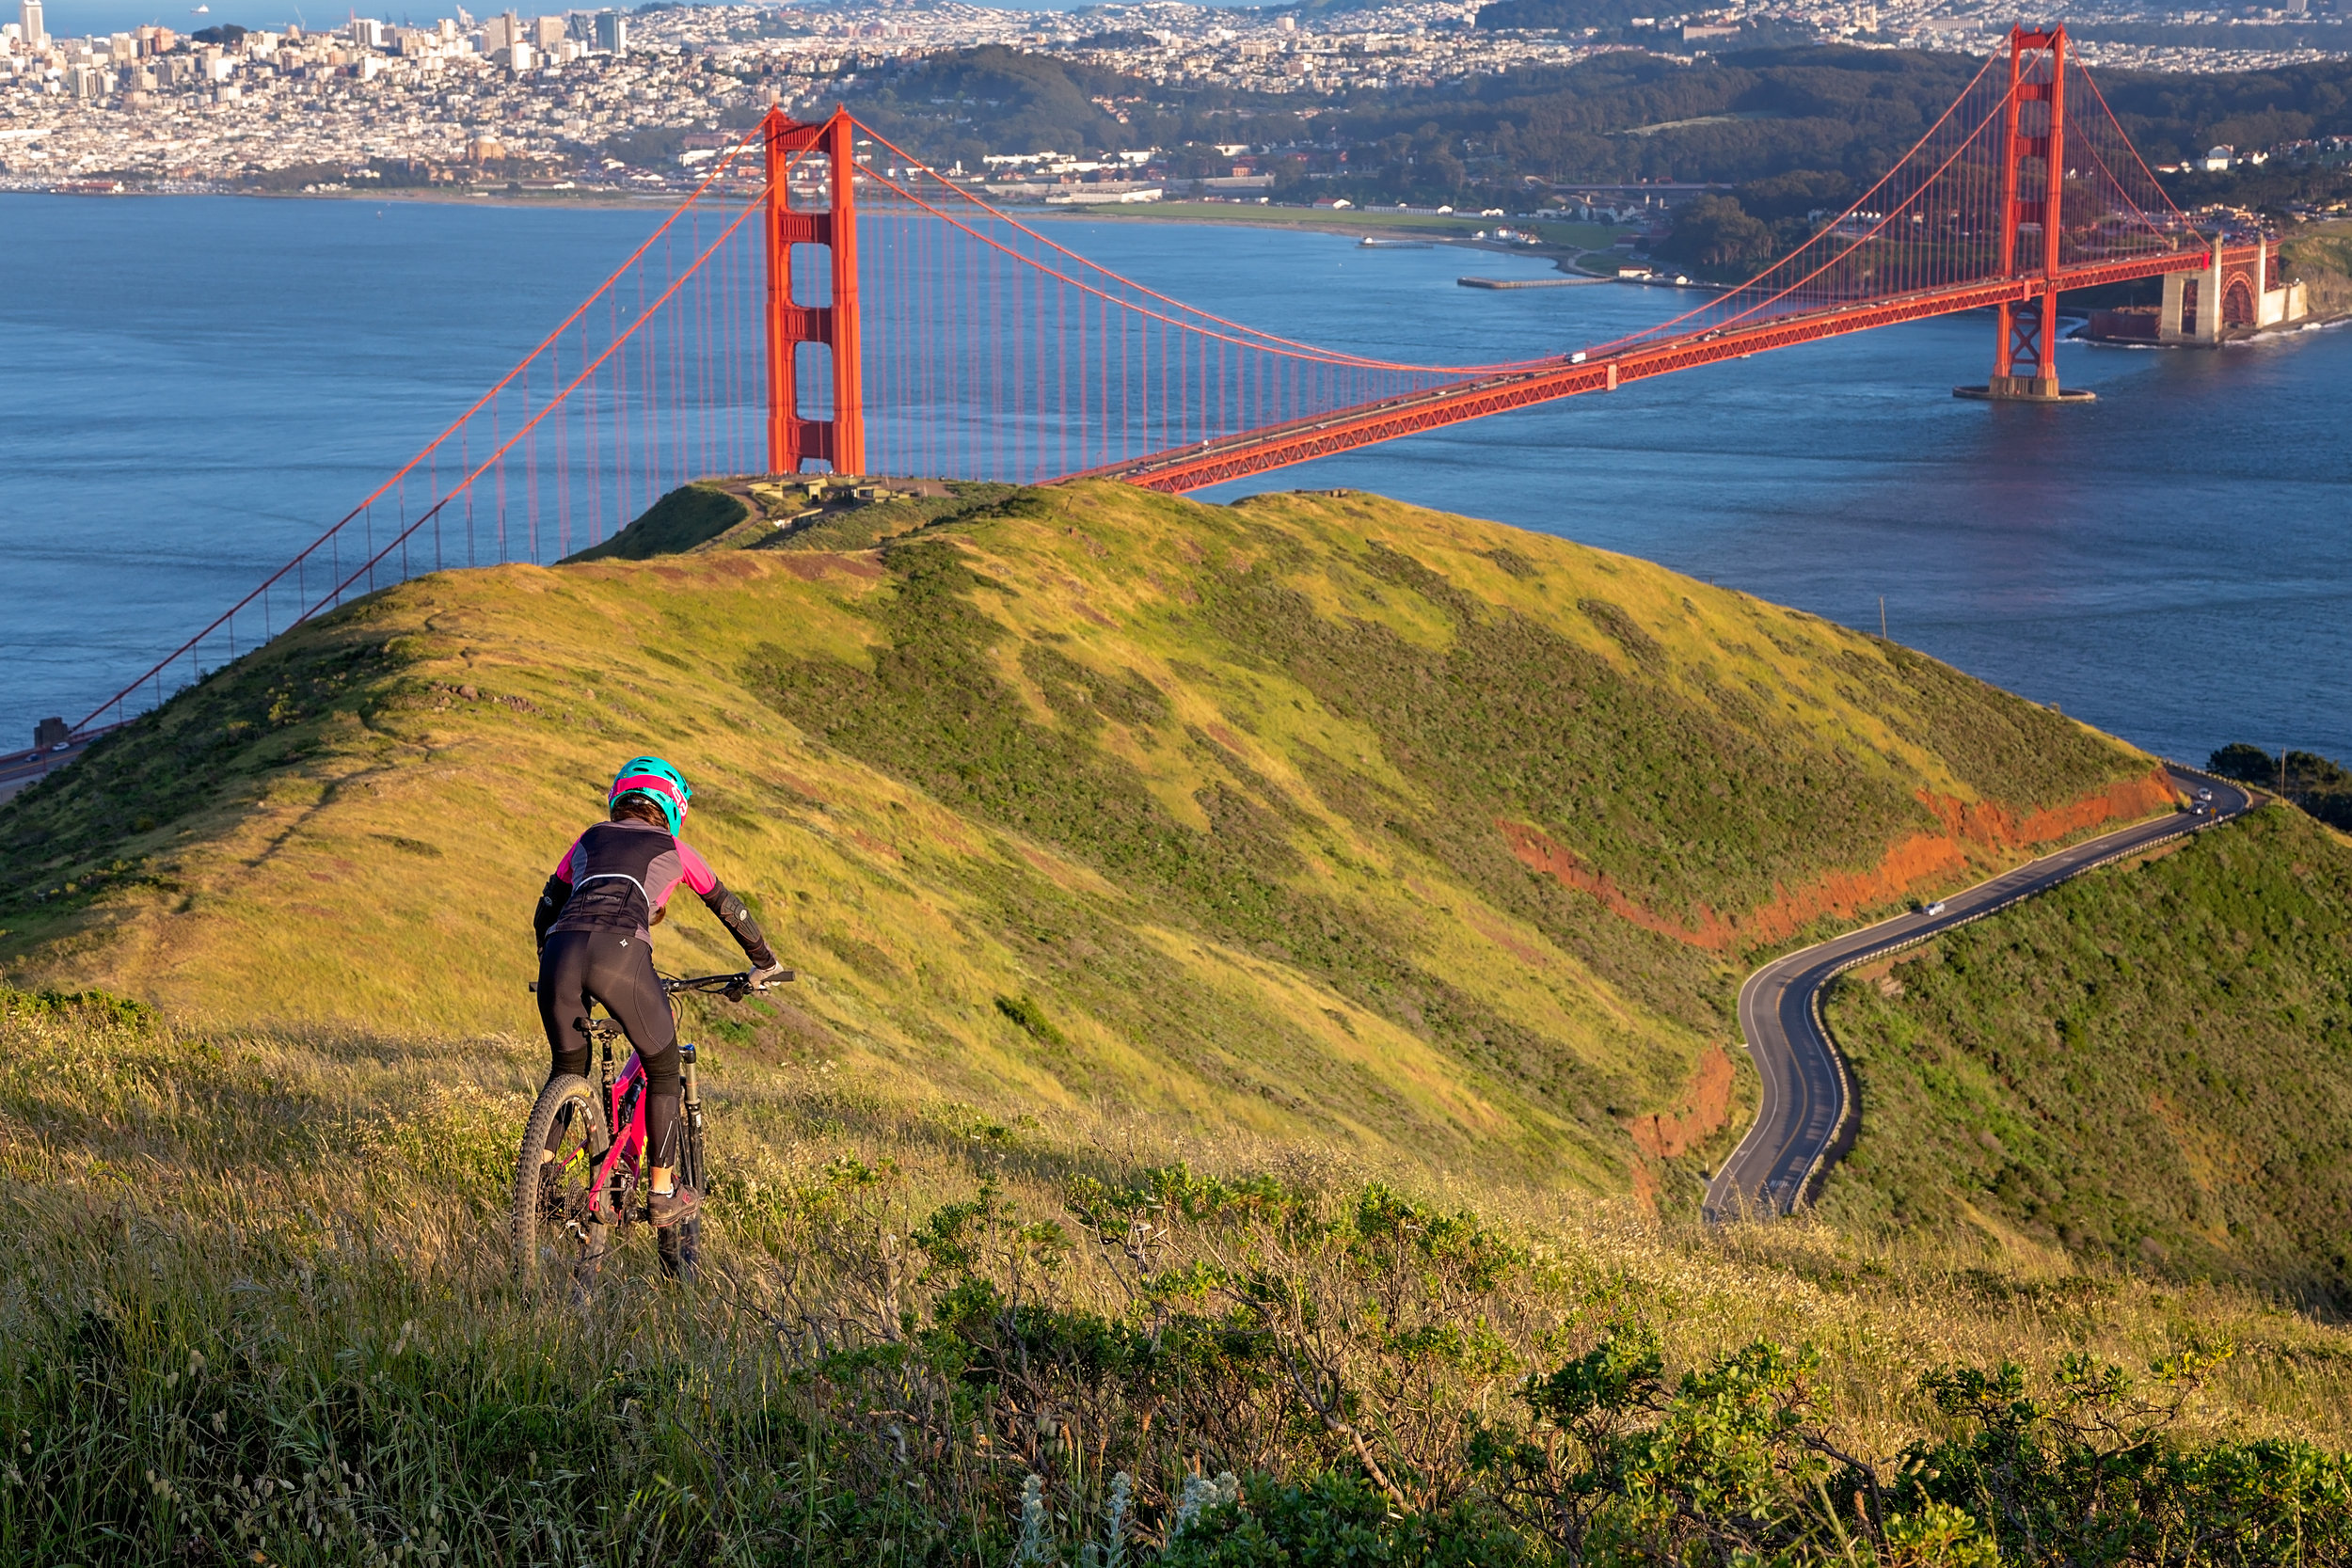 Talk about a ride with a view in the Marin Headlands.